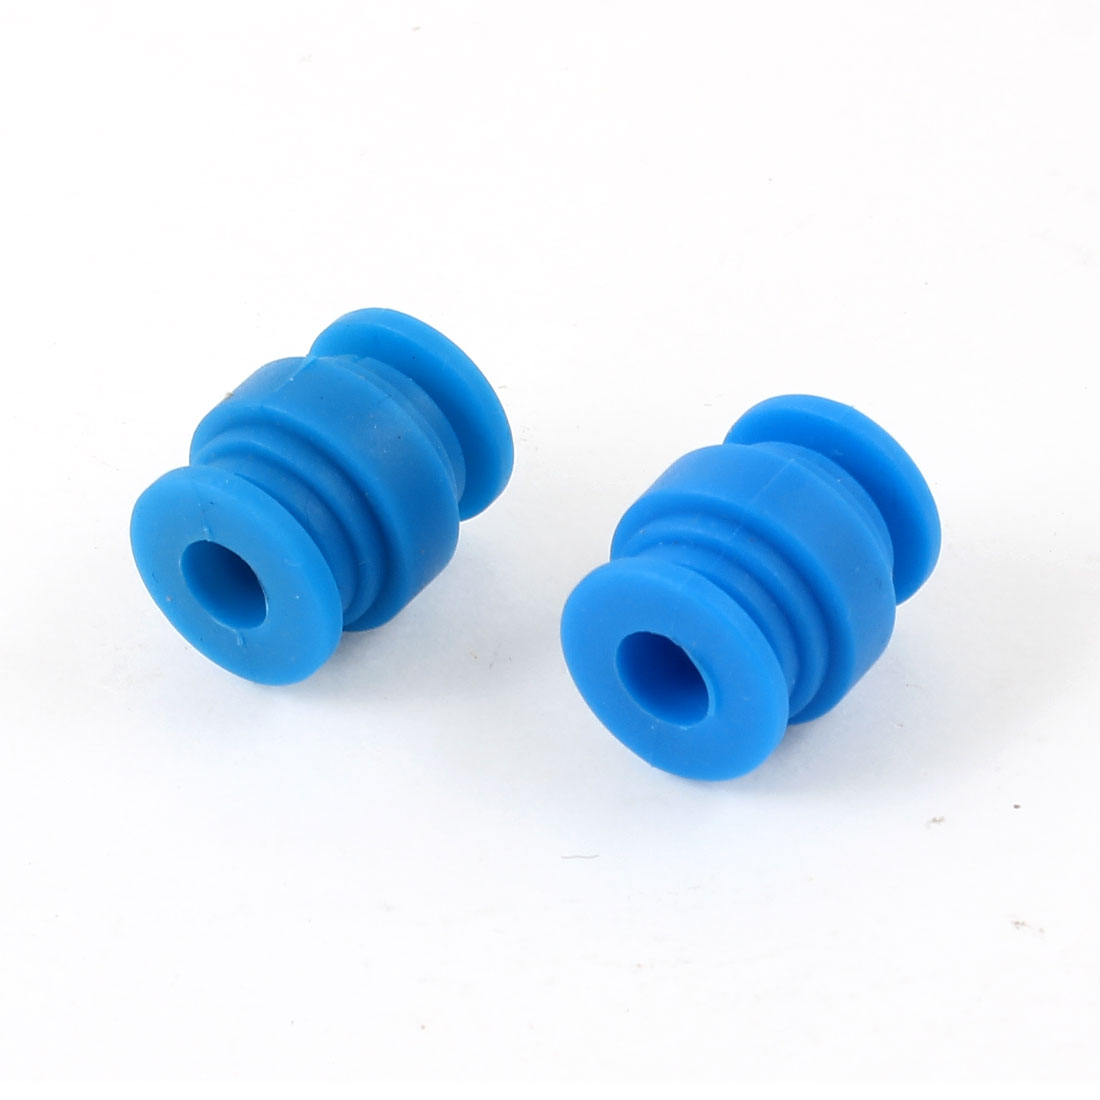 Radio-controlled Aircraft Blue Rubber Shock Absorption Damping Ball 2 Pcs